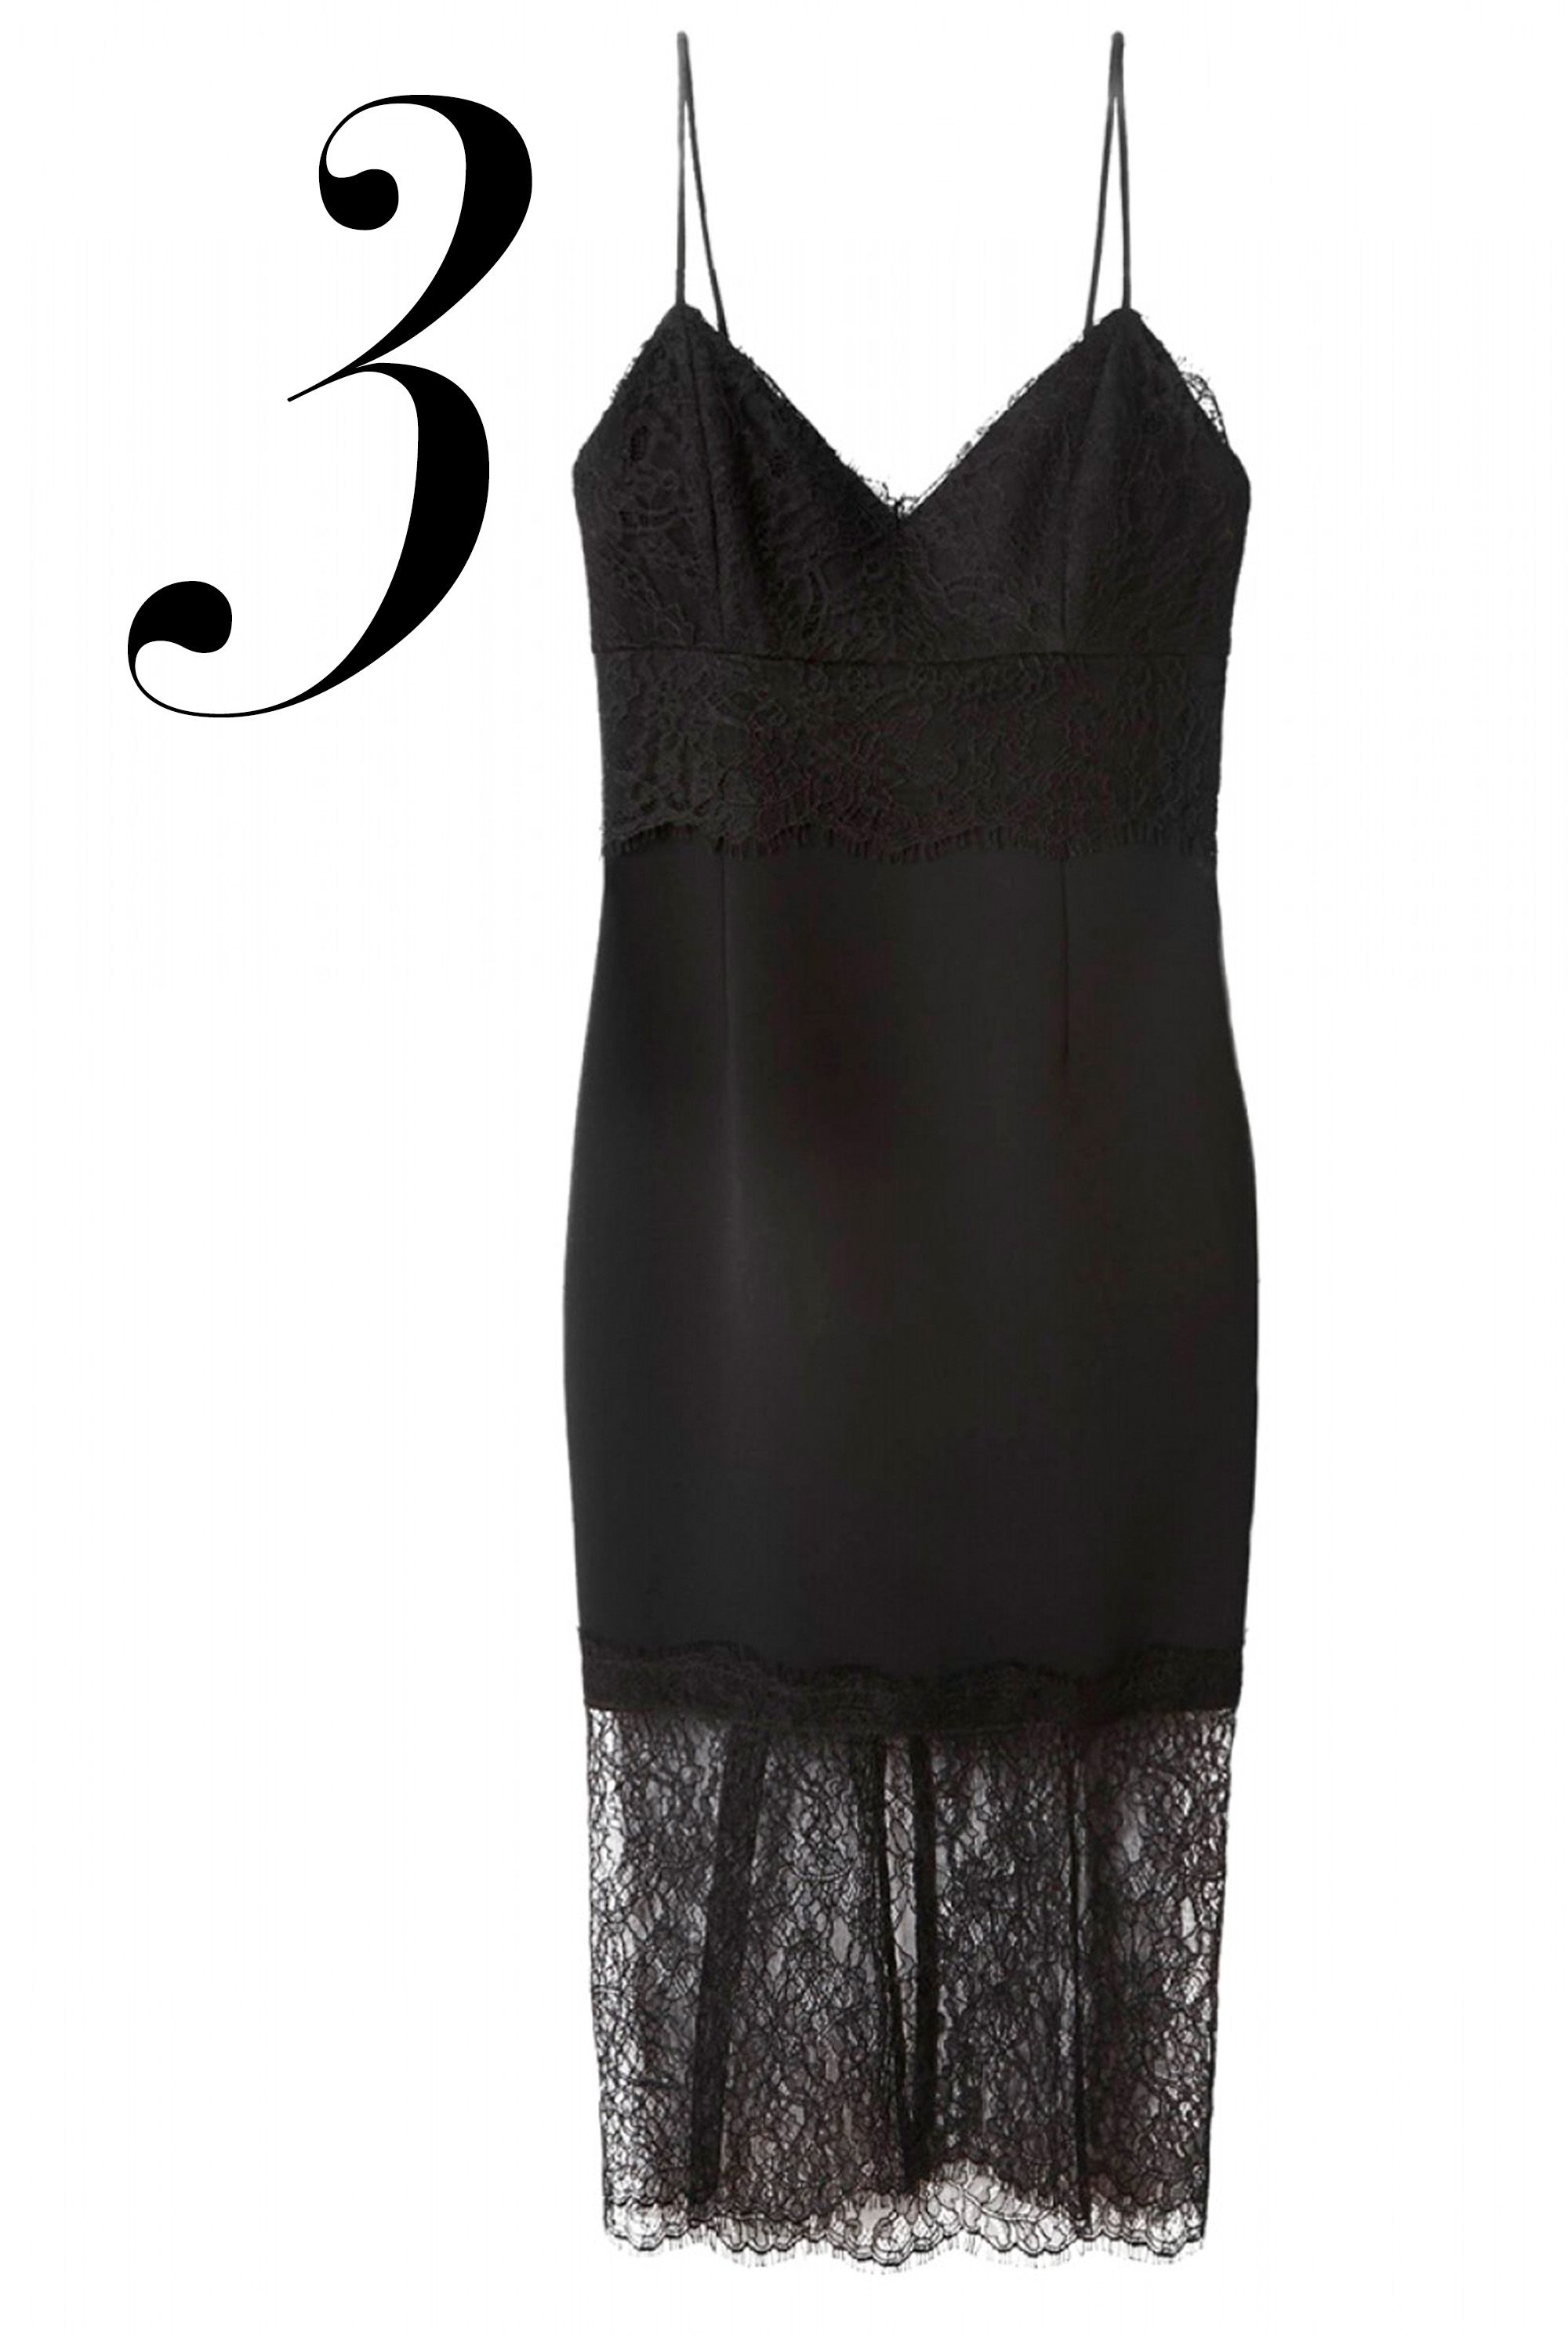 "<p><em>Nicholas dress, $535, <a href=""http://shop.harpersbazaar.com/designers/nicholas/lace-trim-dress/"" target=""_blank"">shopBAZAAR.com</a>.</em></p>"